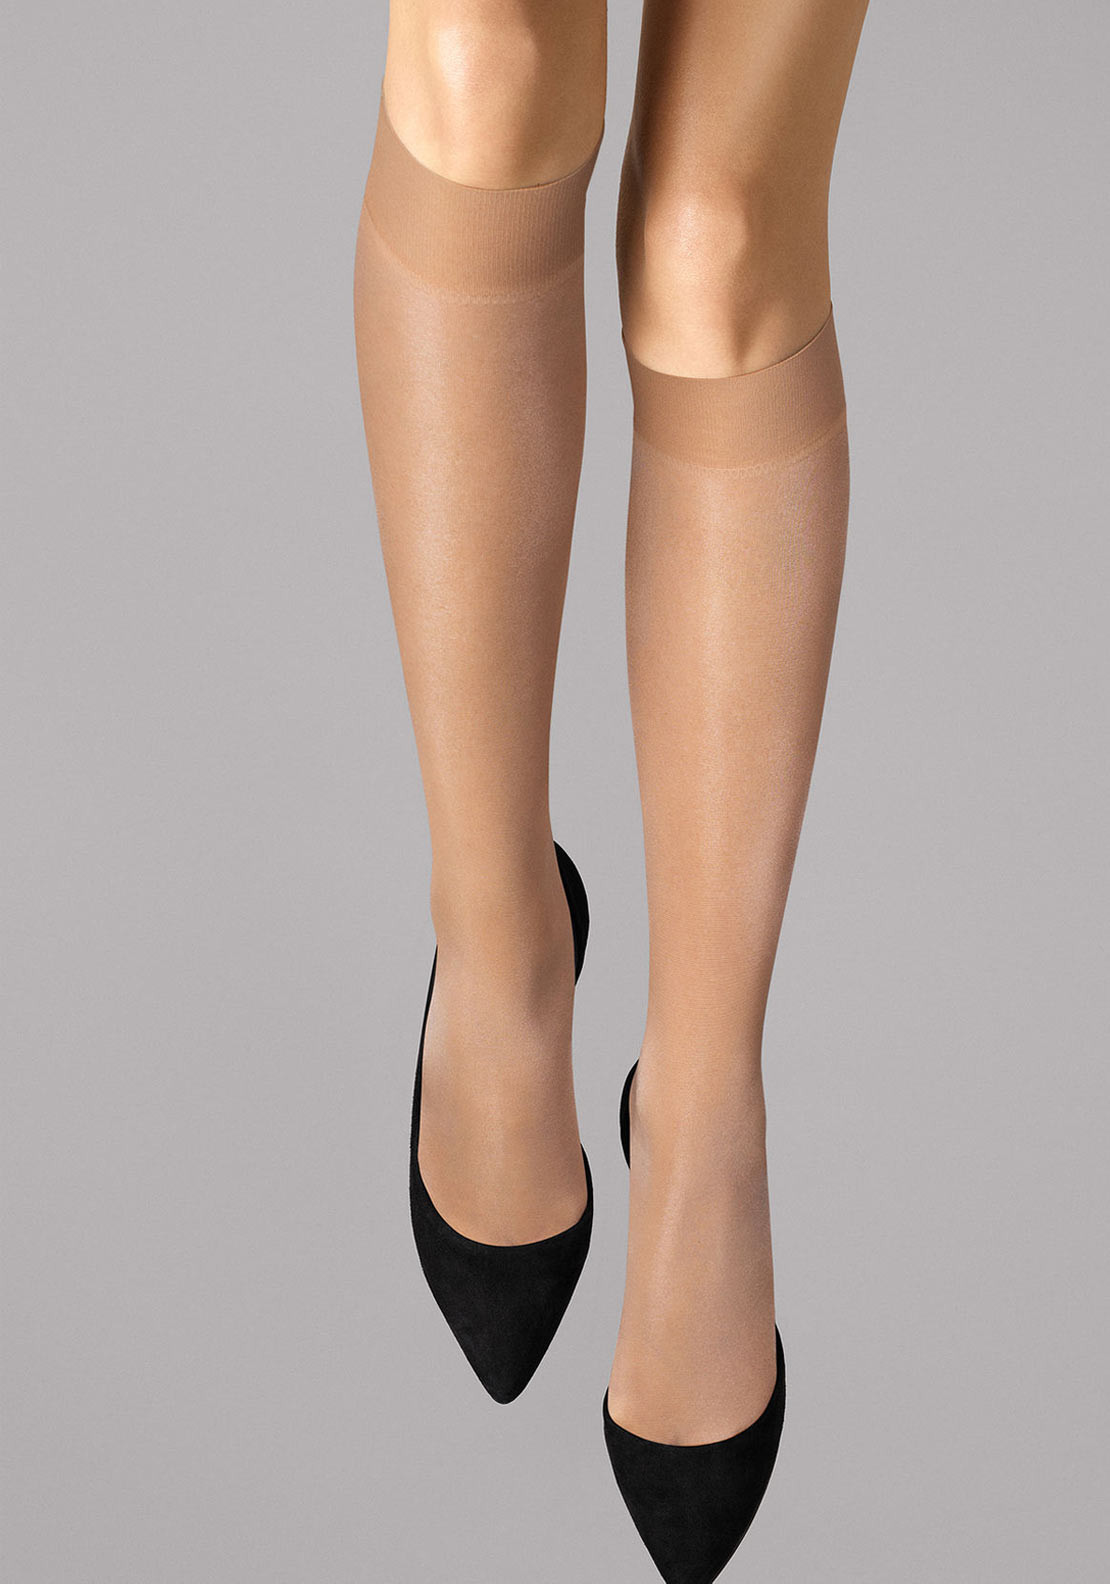 Wolford Satin Touch 20 Knee High Tights, Gobi